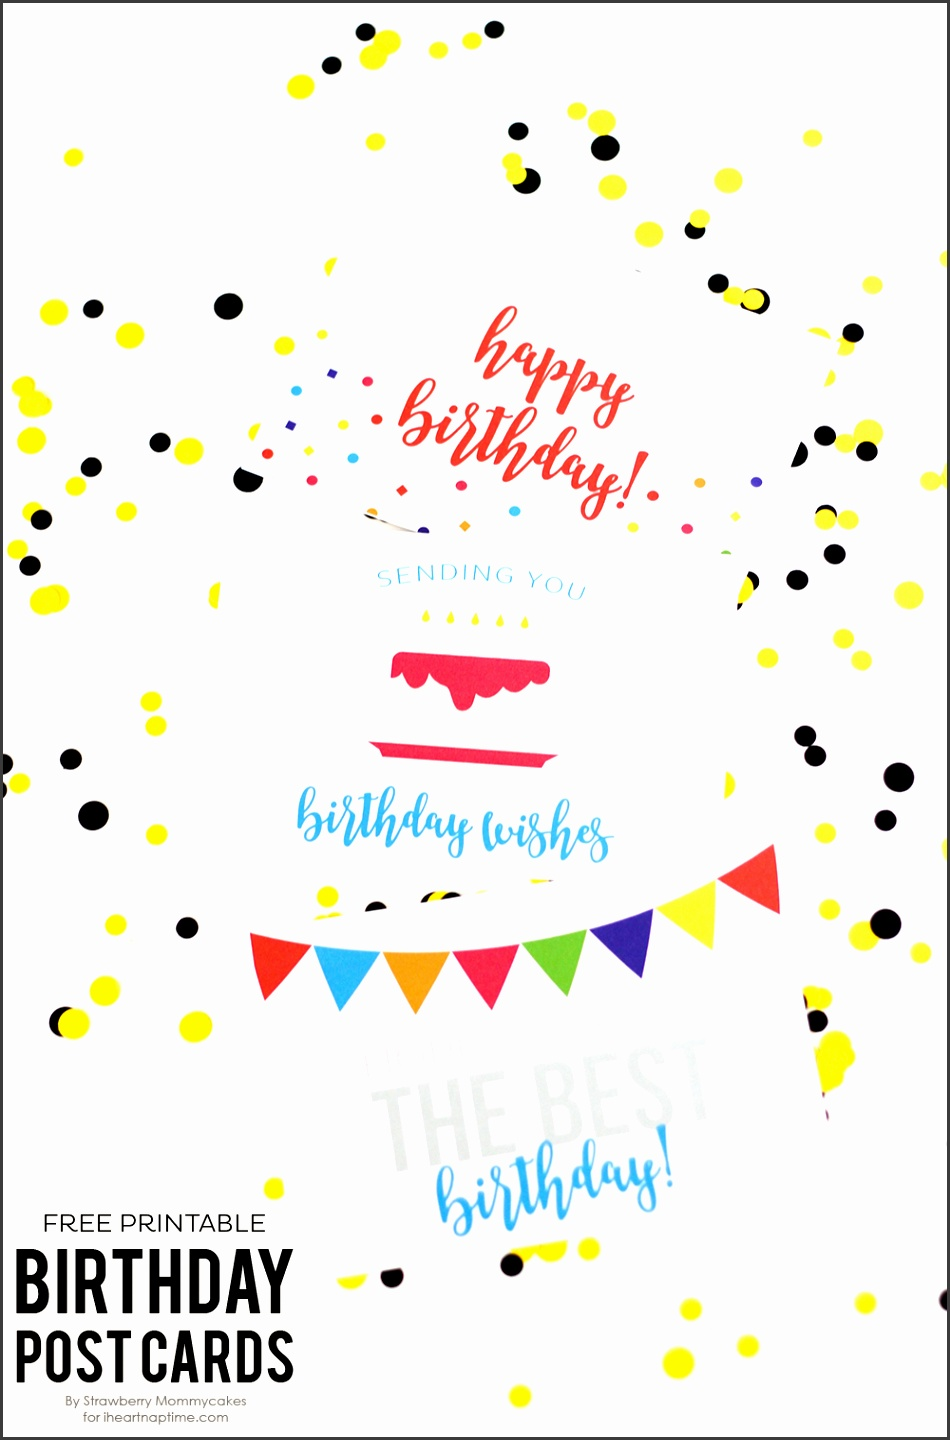 Free printable cards fun t ideas with printable tags and many more great birthday ideas